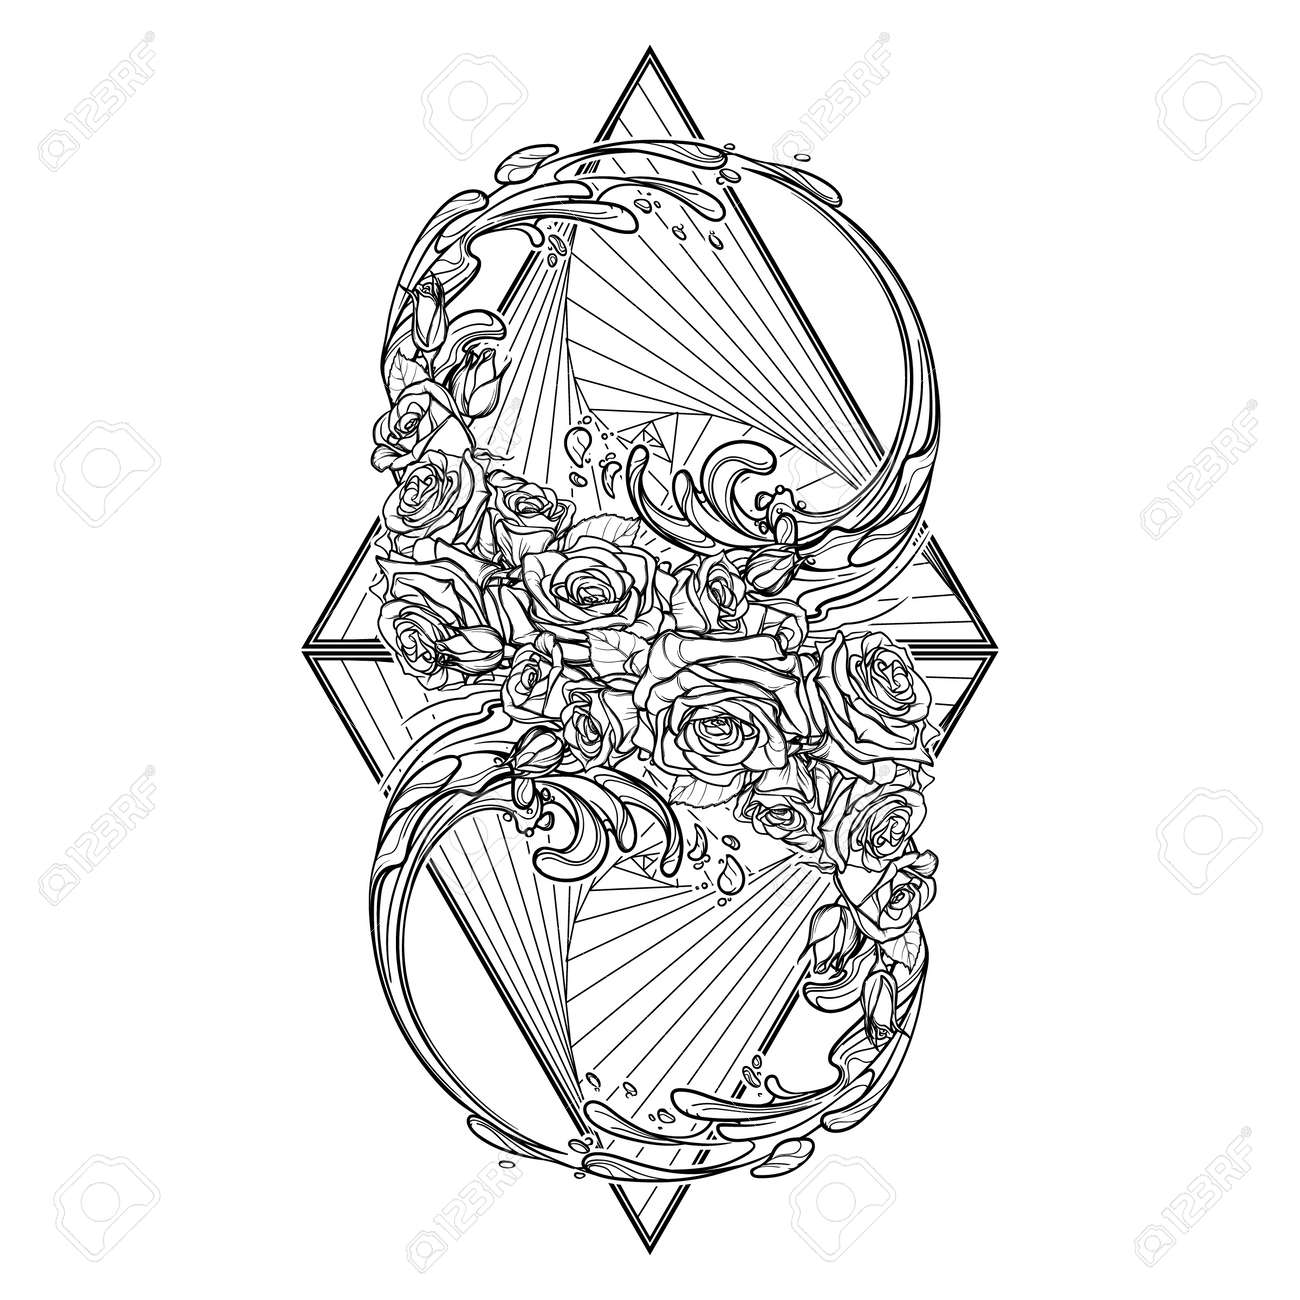 Alchemic element of water sign artistic decorative interpretation alchemic element of water sign artistic decorative interpretation of the mathematical symbol with rose garland biocorpaavc Image collections